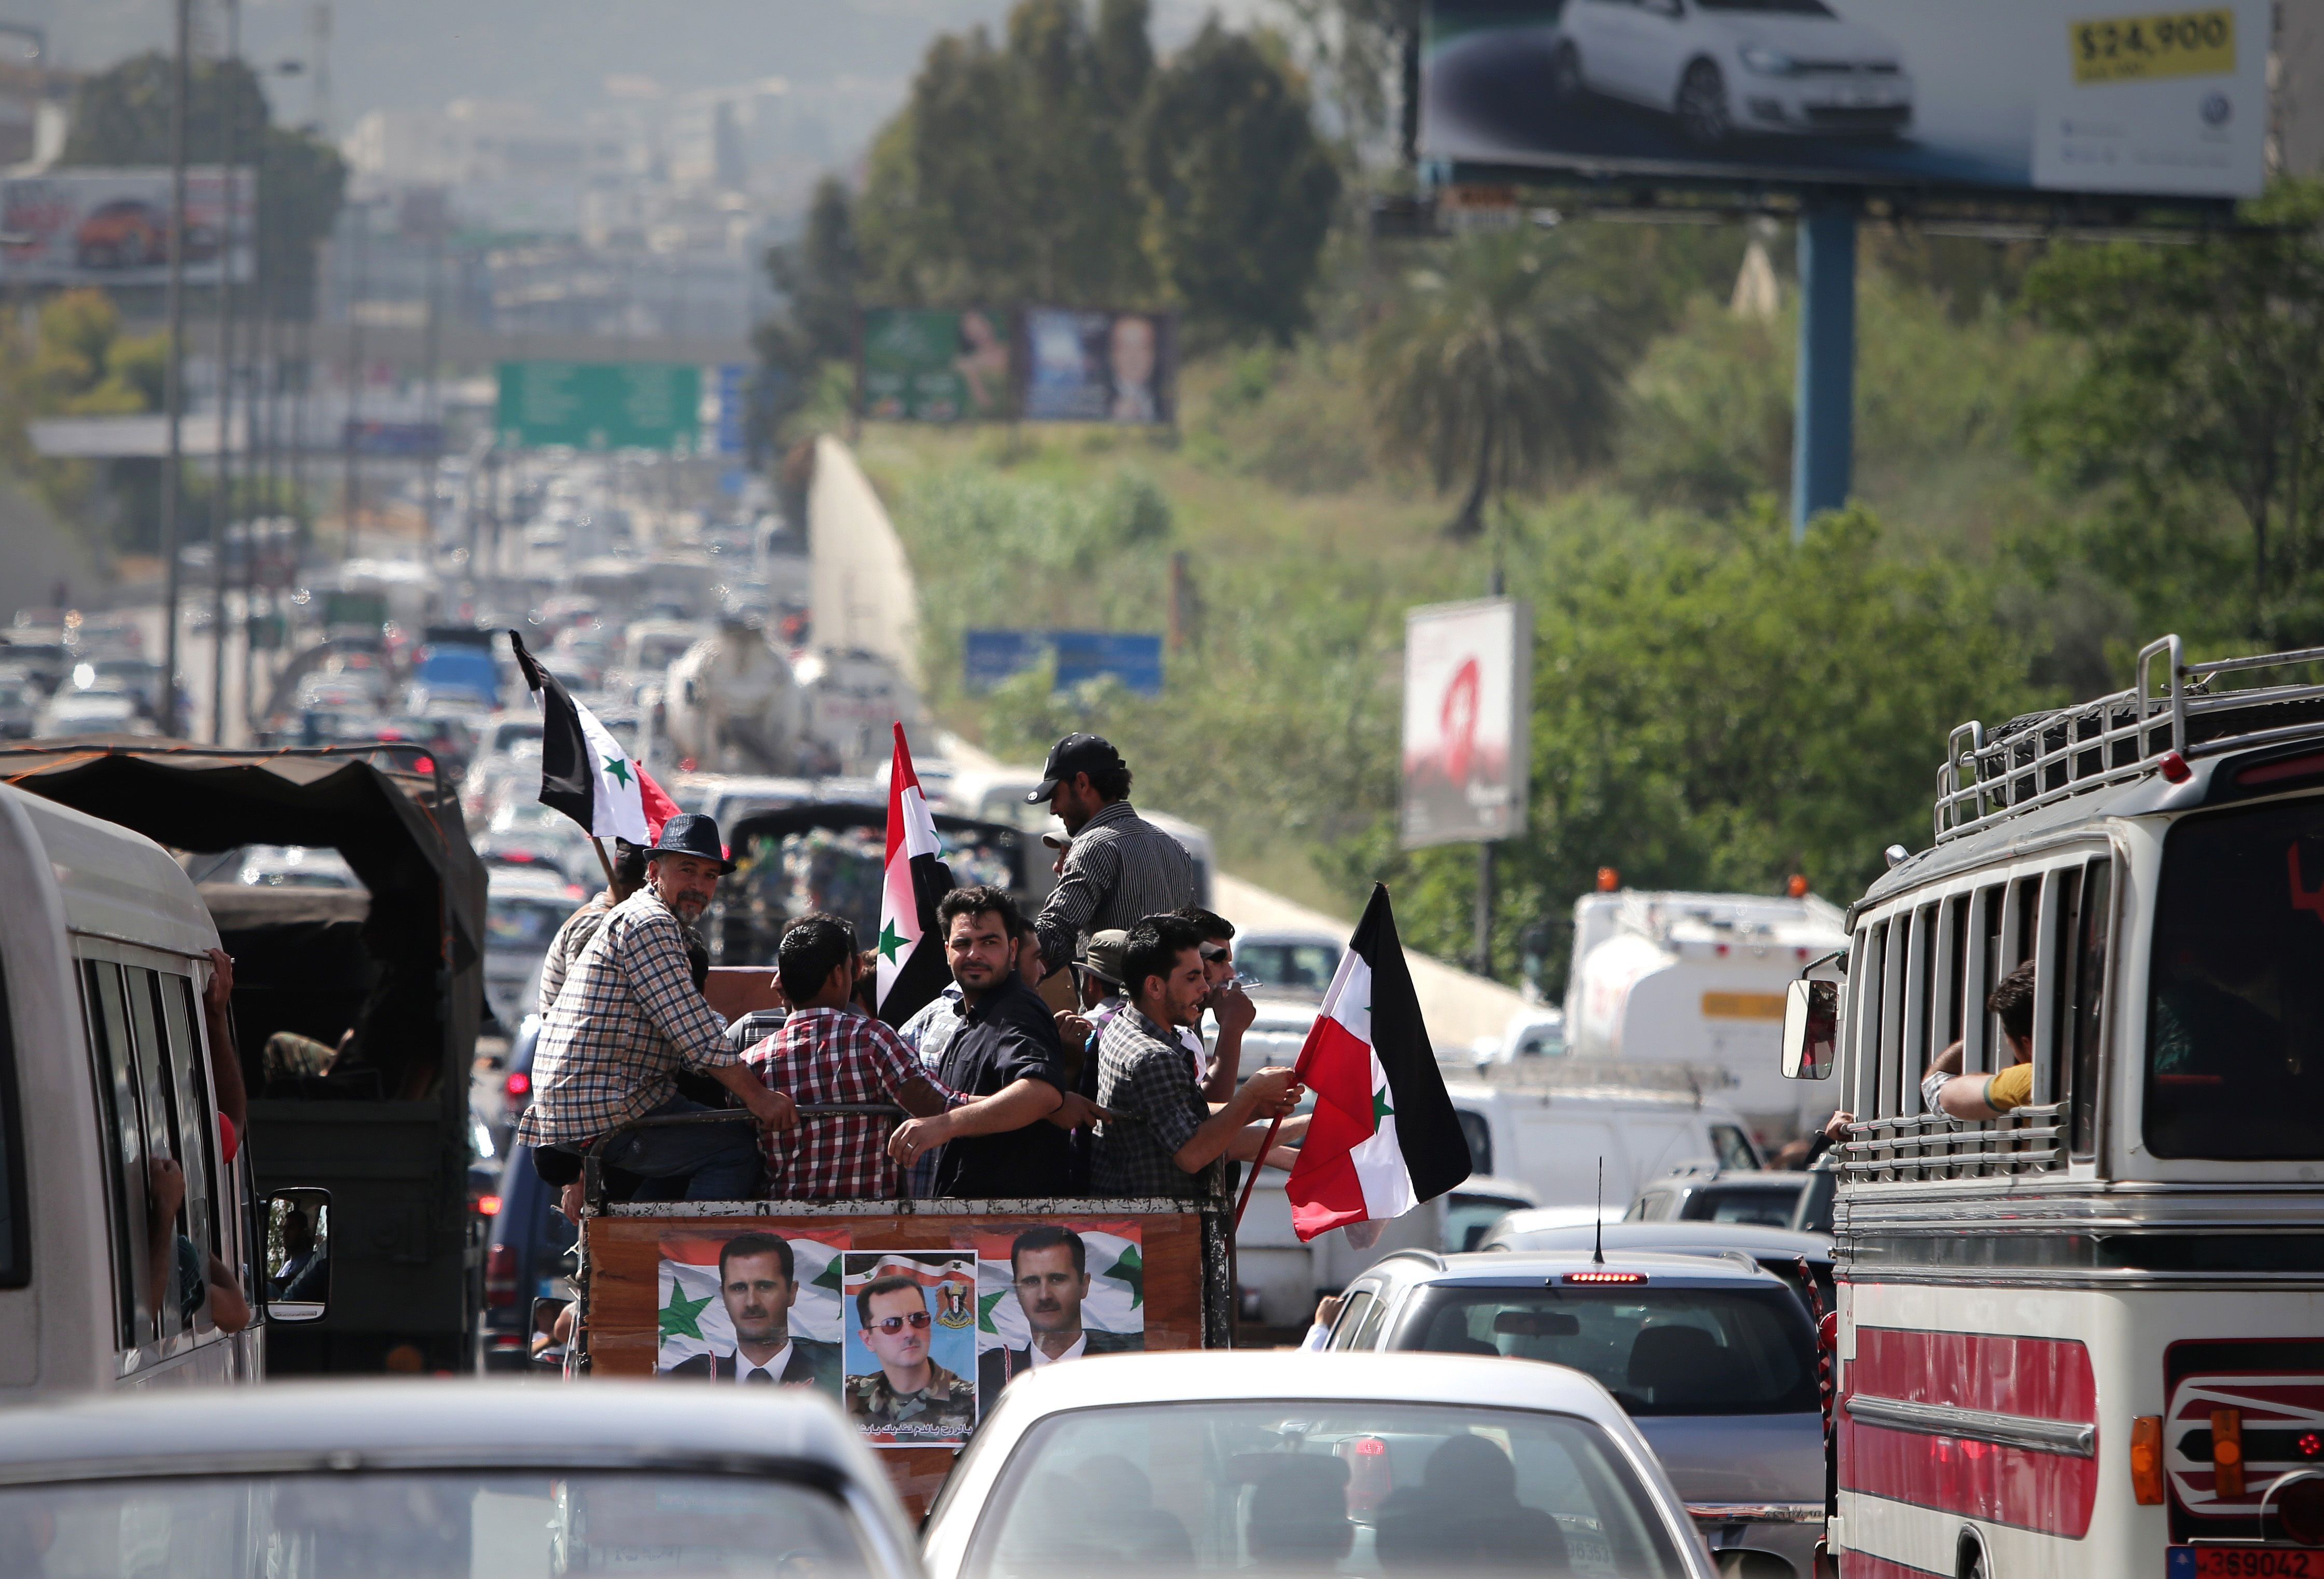 Syrian expatriate living in Lebanon ride in a truck with posters of Syrian president Bashar al-Assad as they drive to the Syrian Embassy in Yarze east of Beirut on May 28, 2014, to vote in the country's presidential elections.  (AFP PHOTO/ JOSEPH EID)